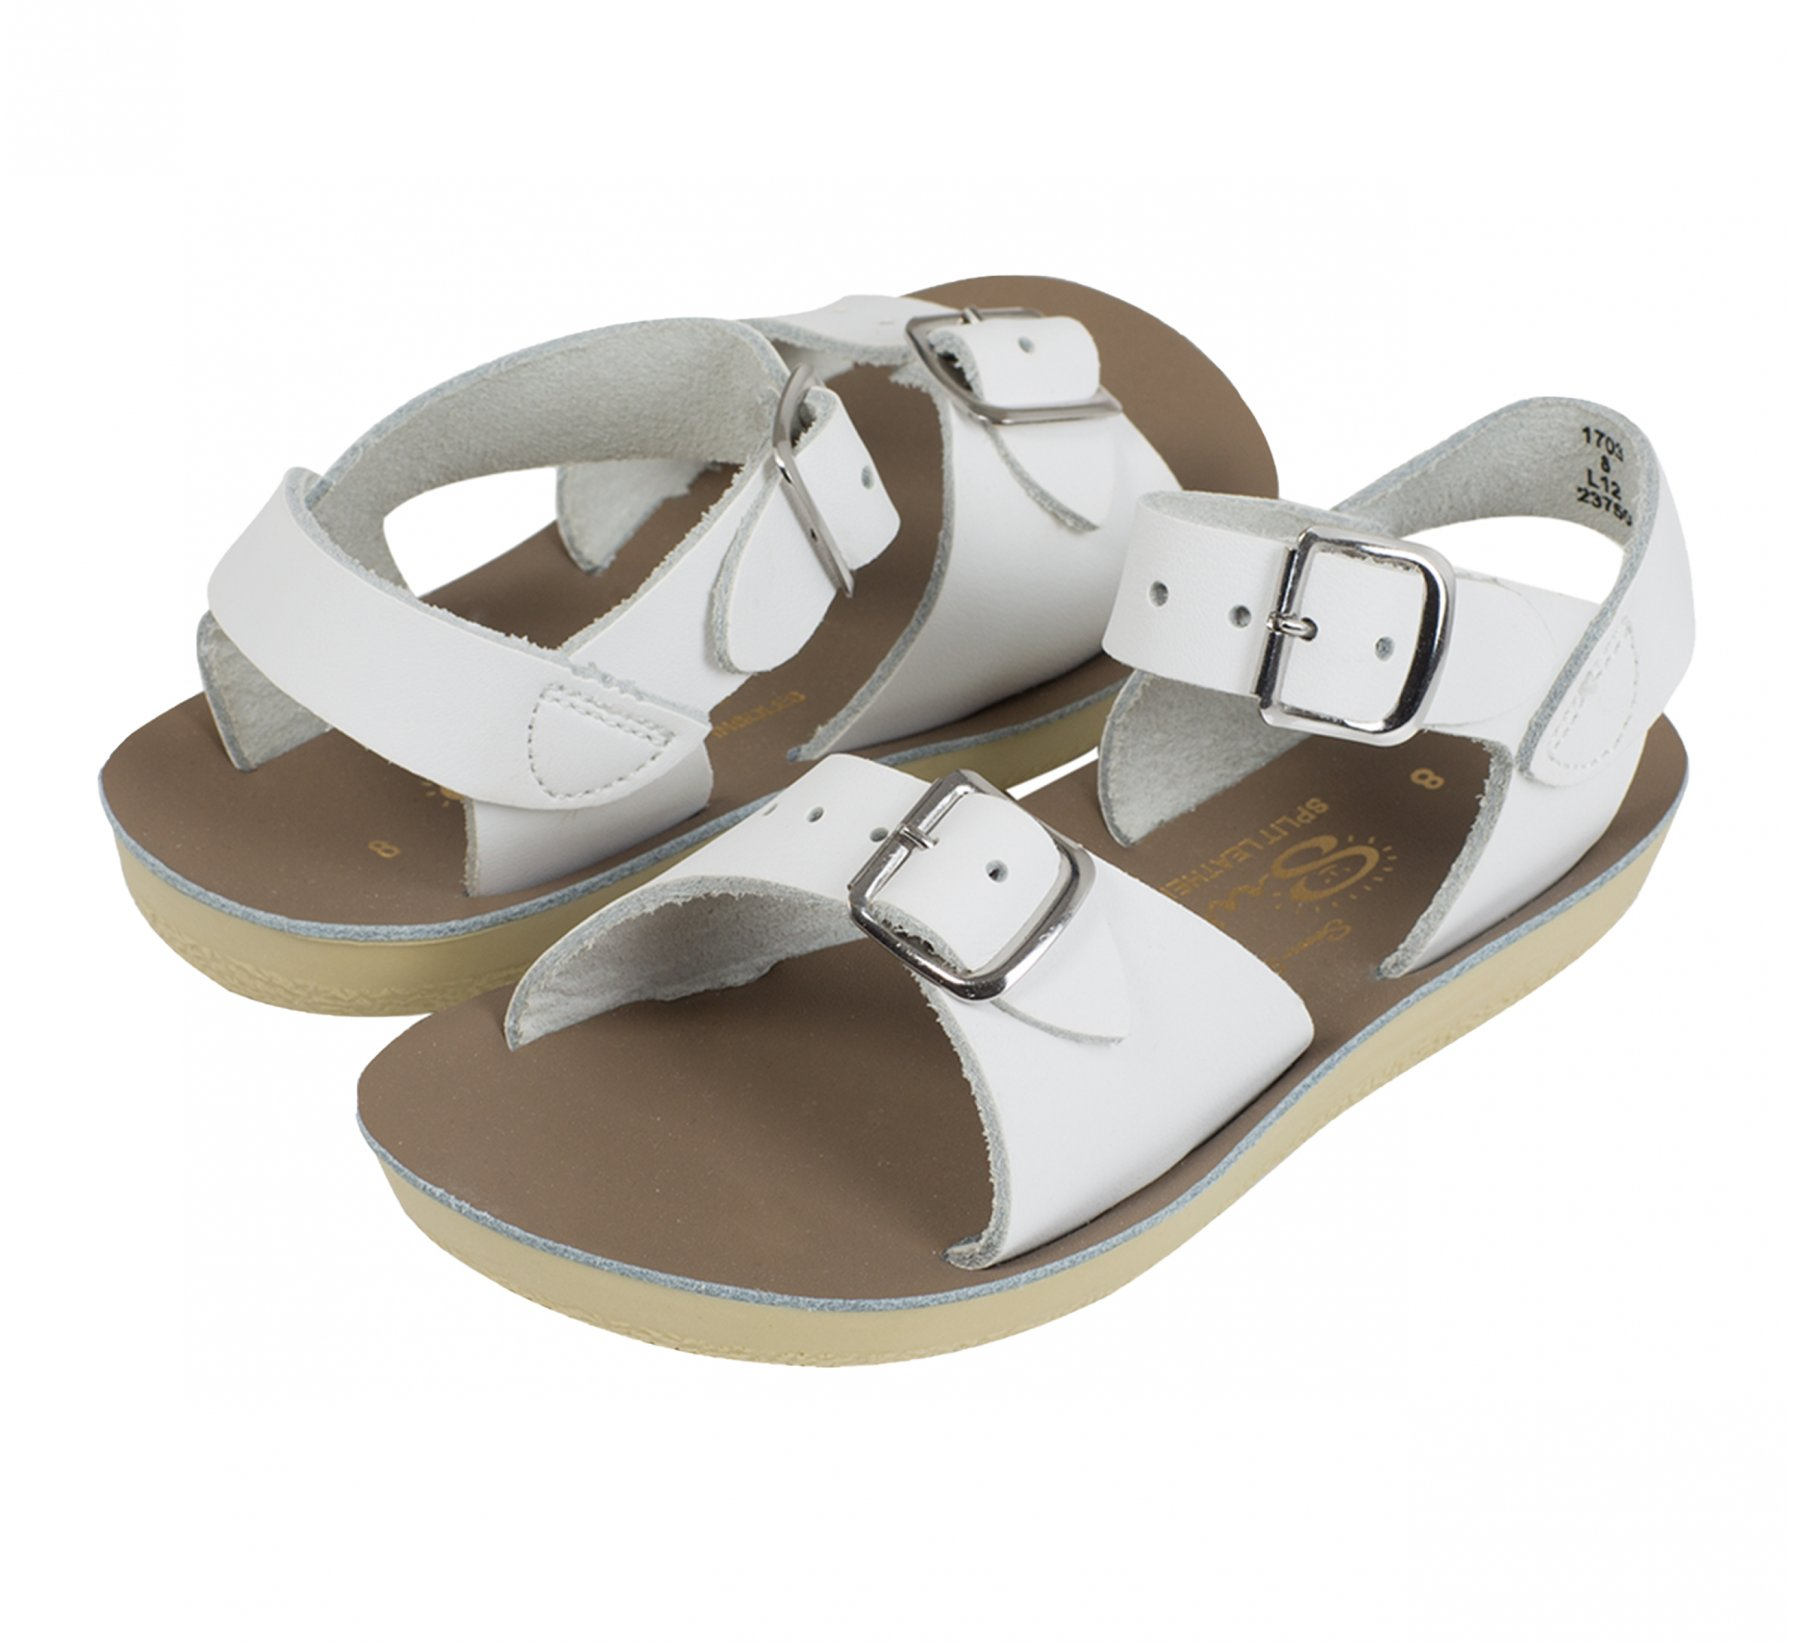 Surfer White - Salt Water Sandals